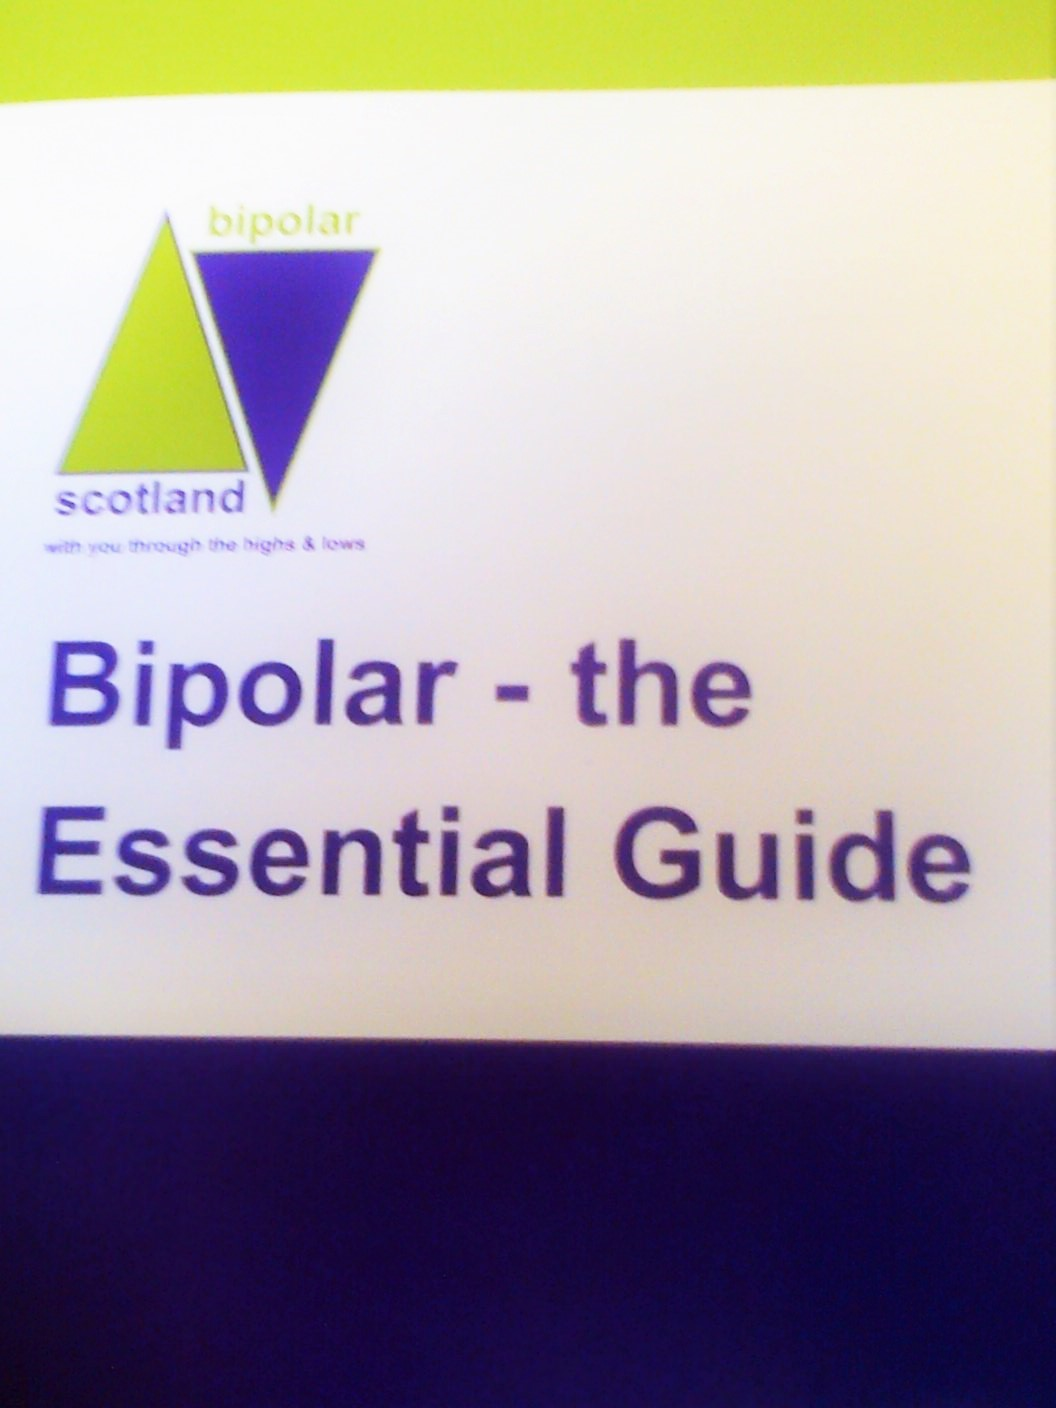 Launch of Bipolar: The Essential Guide